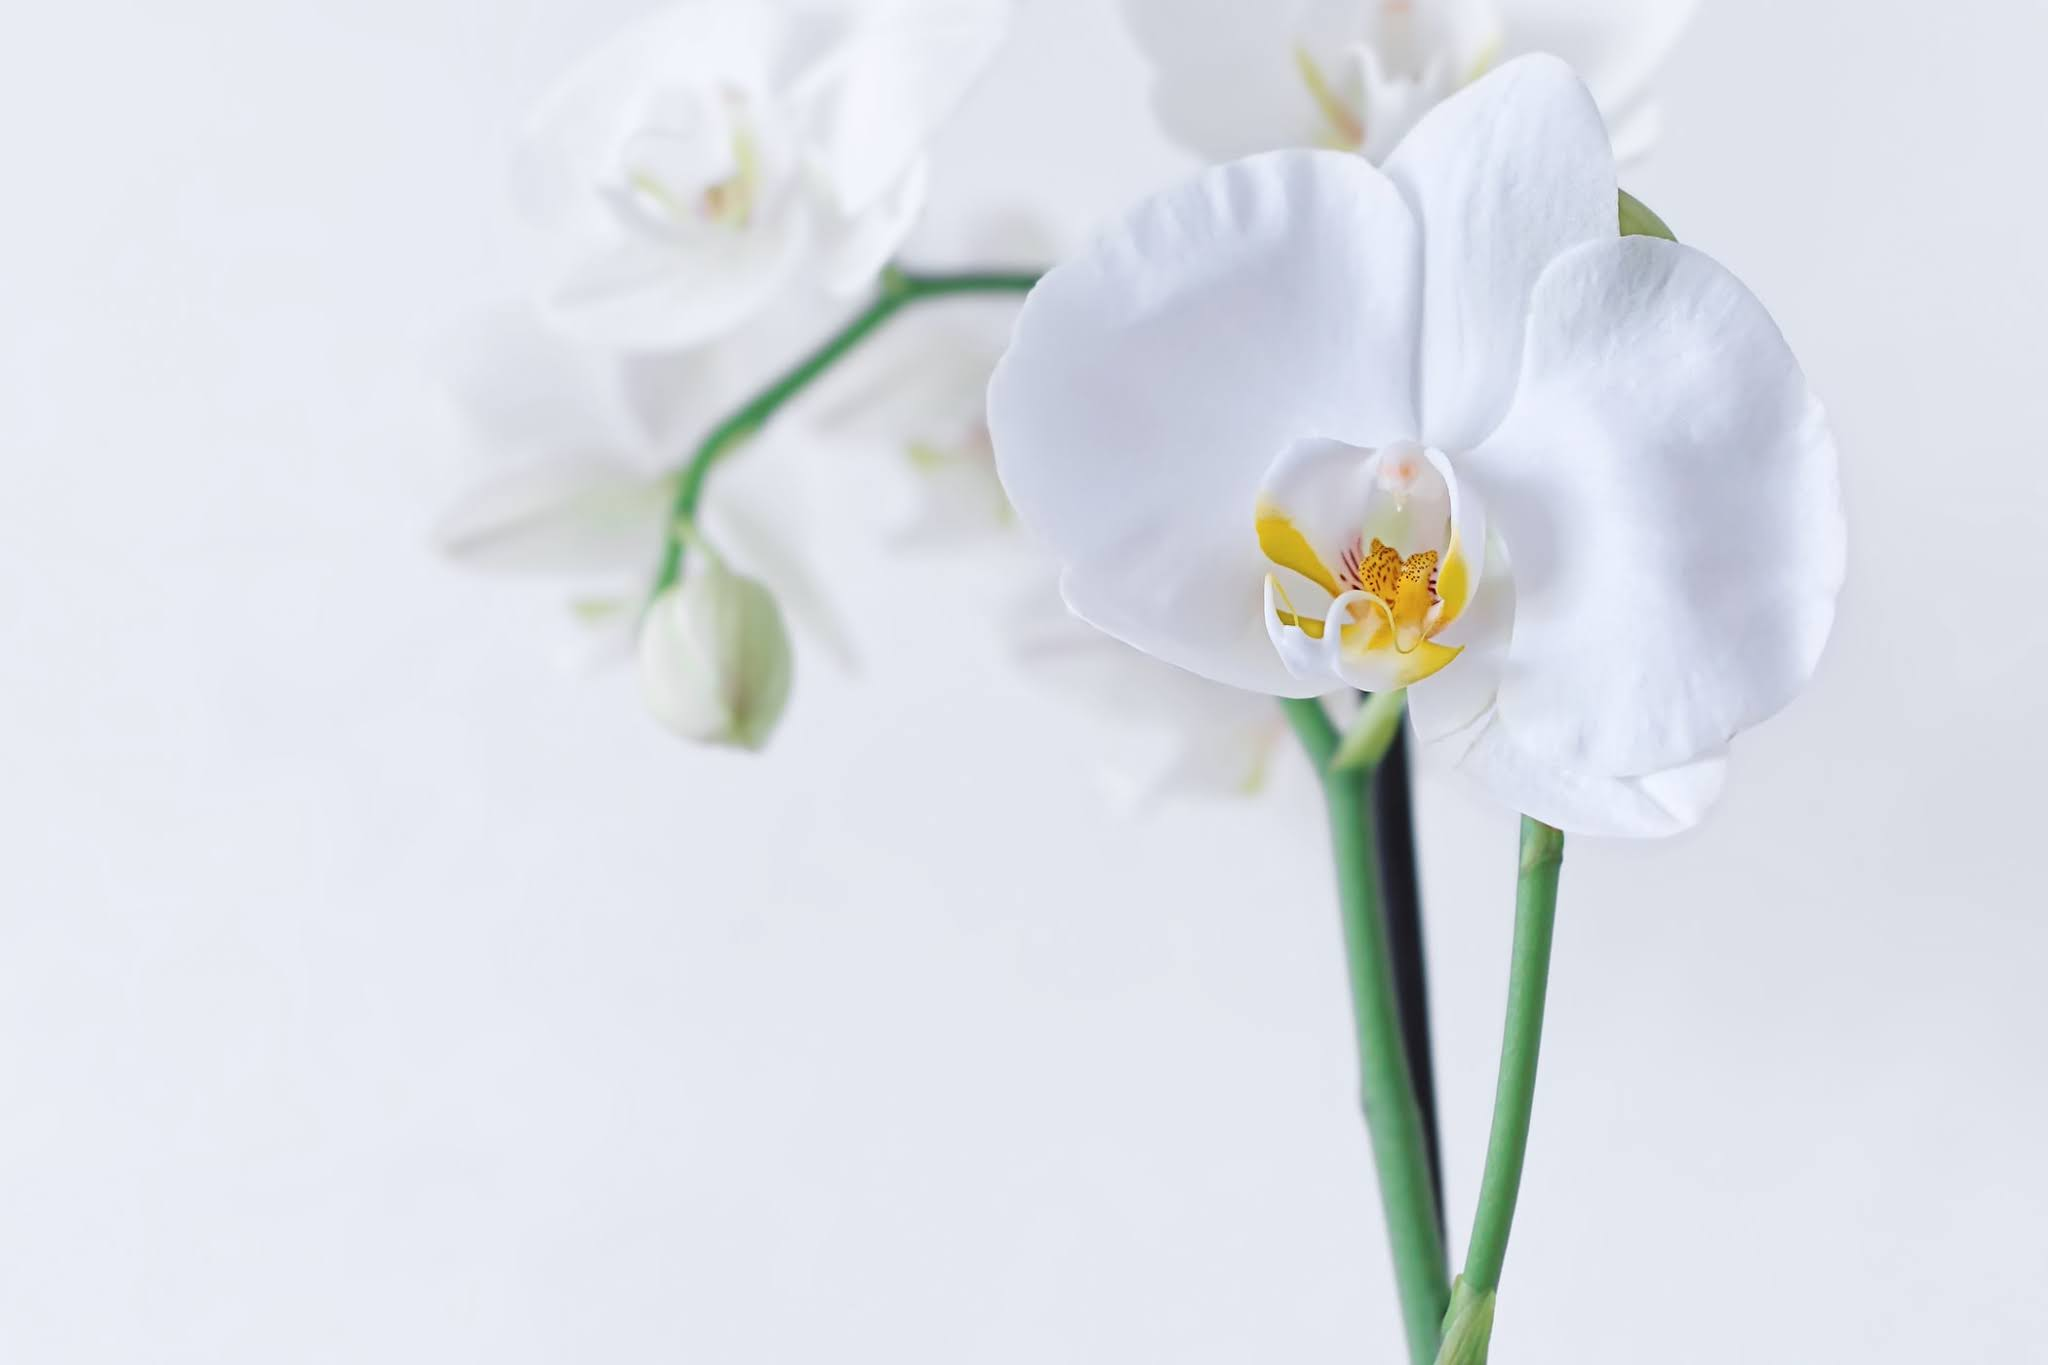 Stock photo of a white Moth Orchid plant